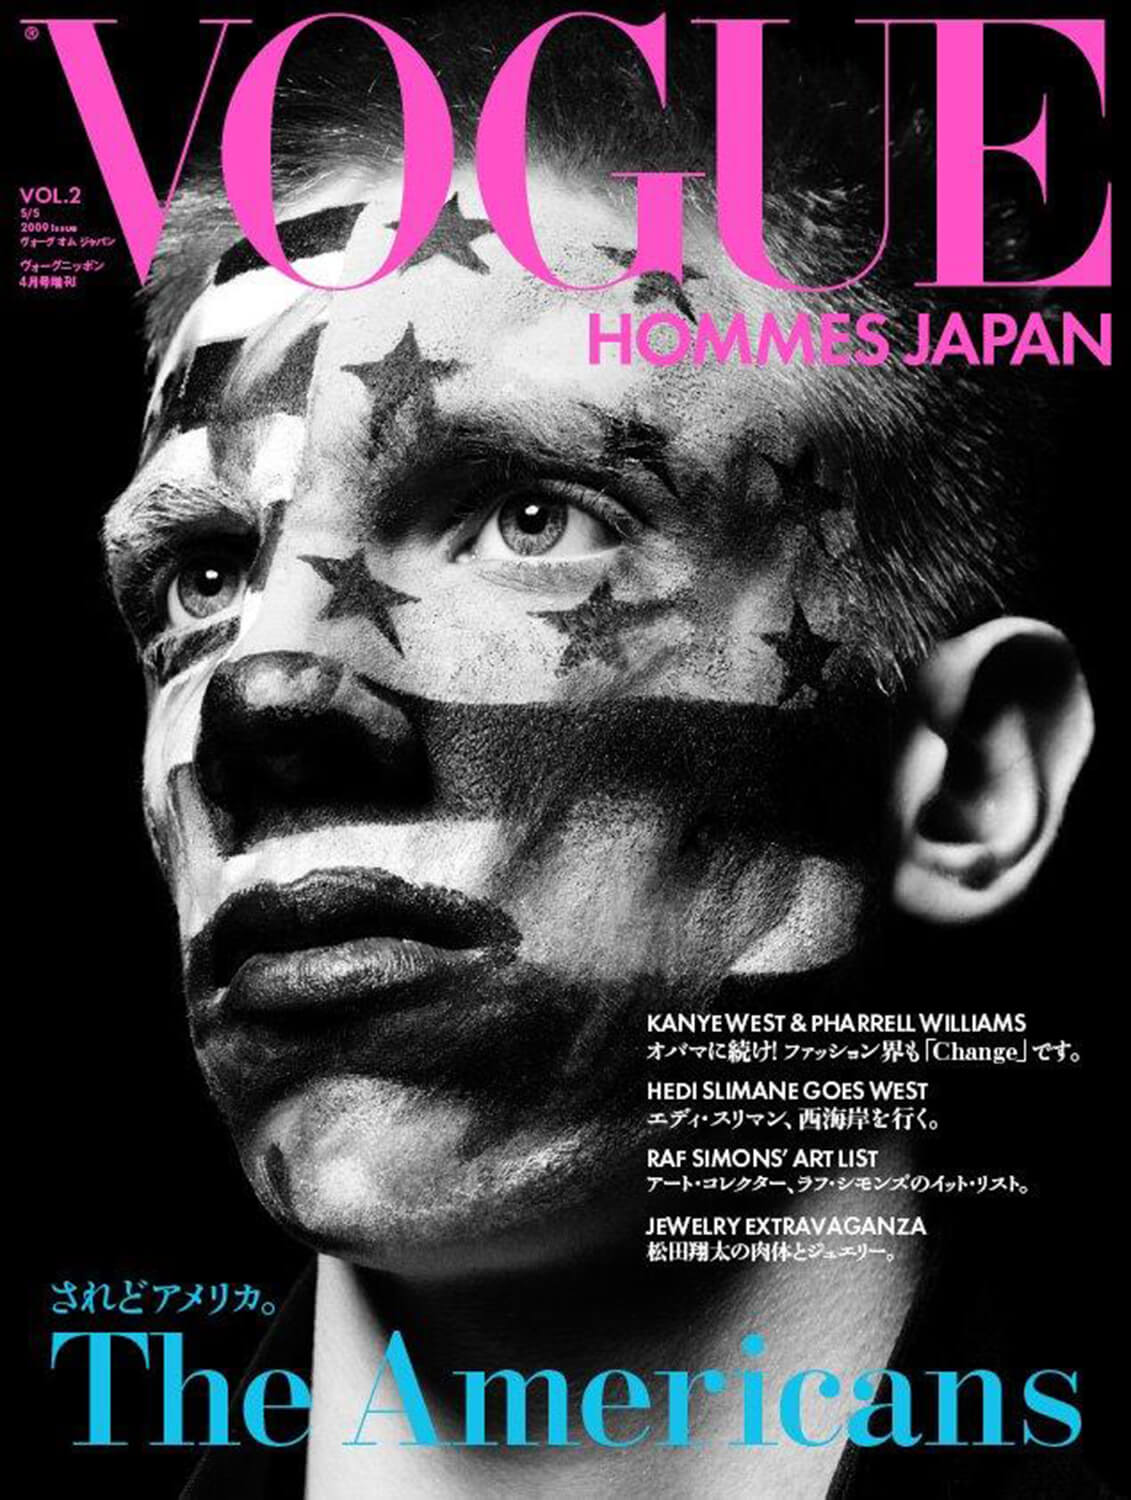 Vogue Hommes Japan Cover for Vogue Hommes Japan (Spring/Summer 2009)